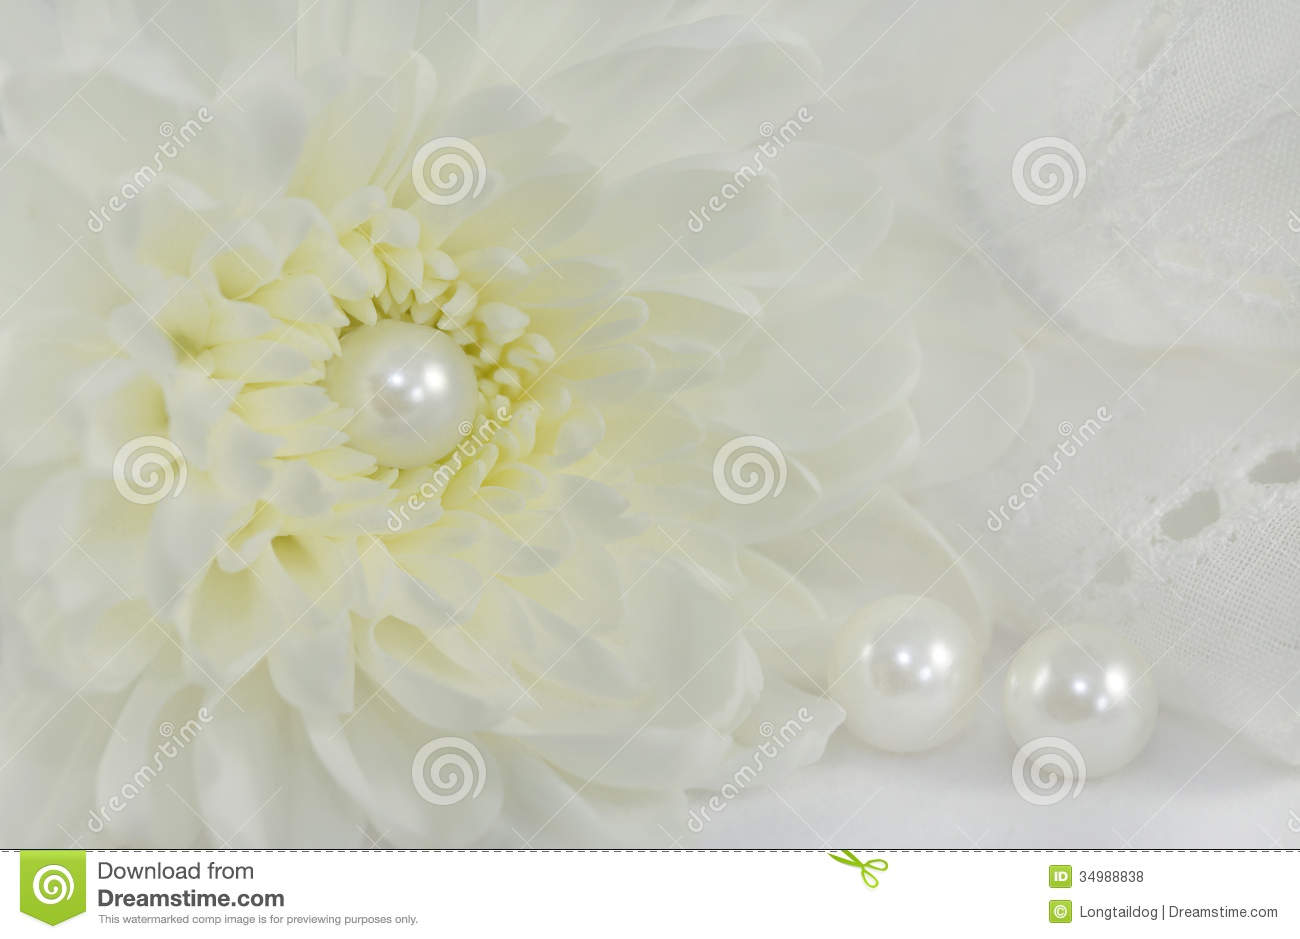 Romantic Abstract Background Stock Photo  Image of abstract flower 34988838